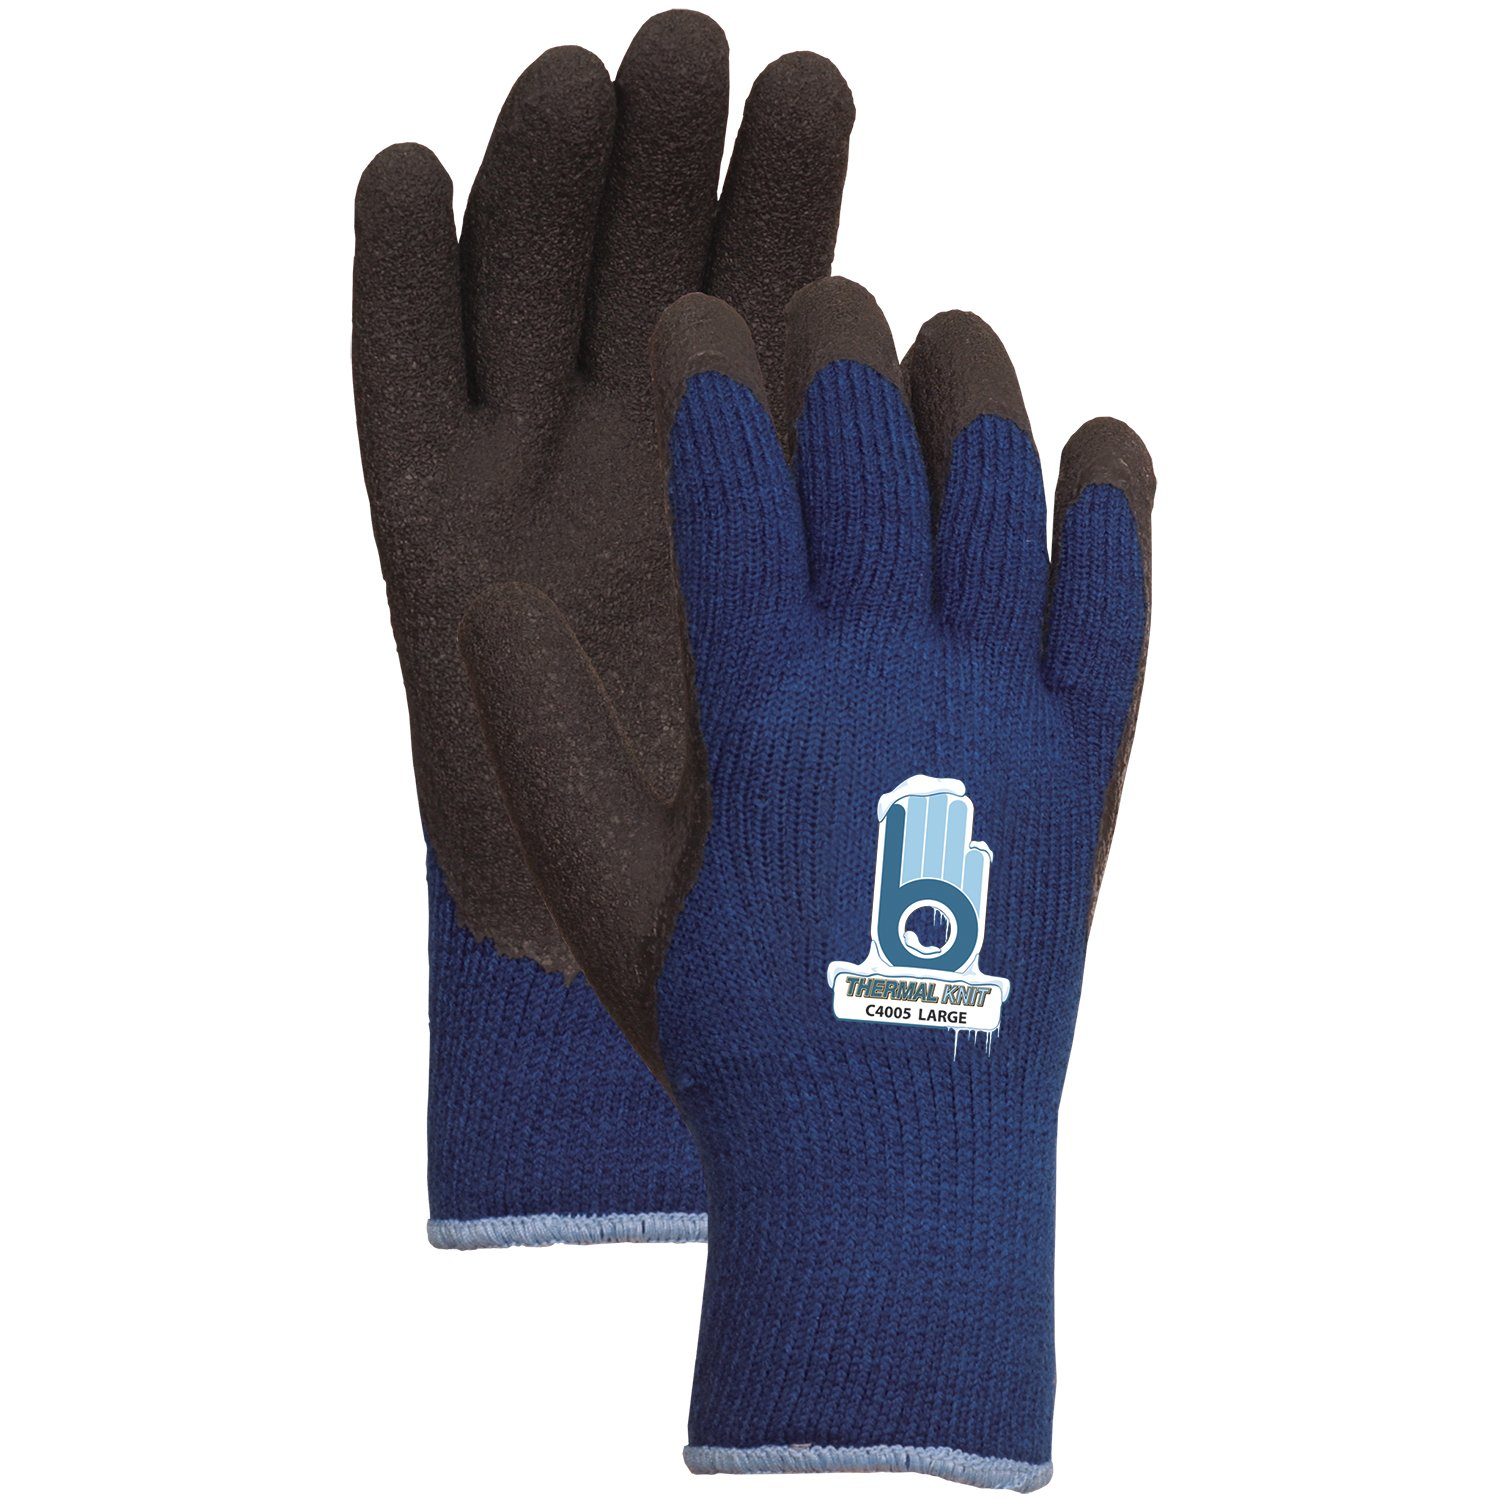 Bellingham C4005S Extra Heavy-Duty Insulated Thermal Knit Work Glove, Heavy-Duty Acrylic Liner and Black Rubber Palm, Small, Dark Blue